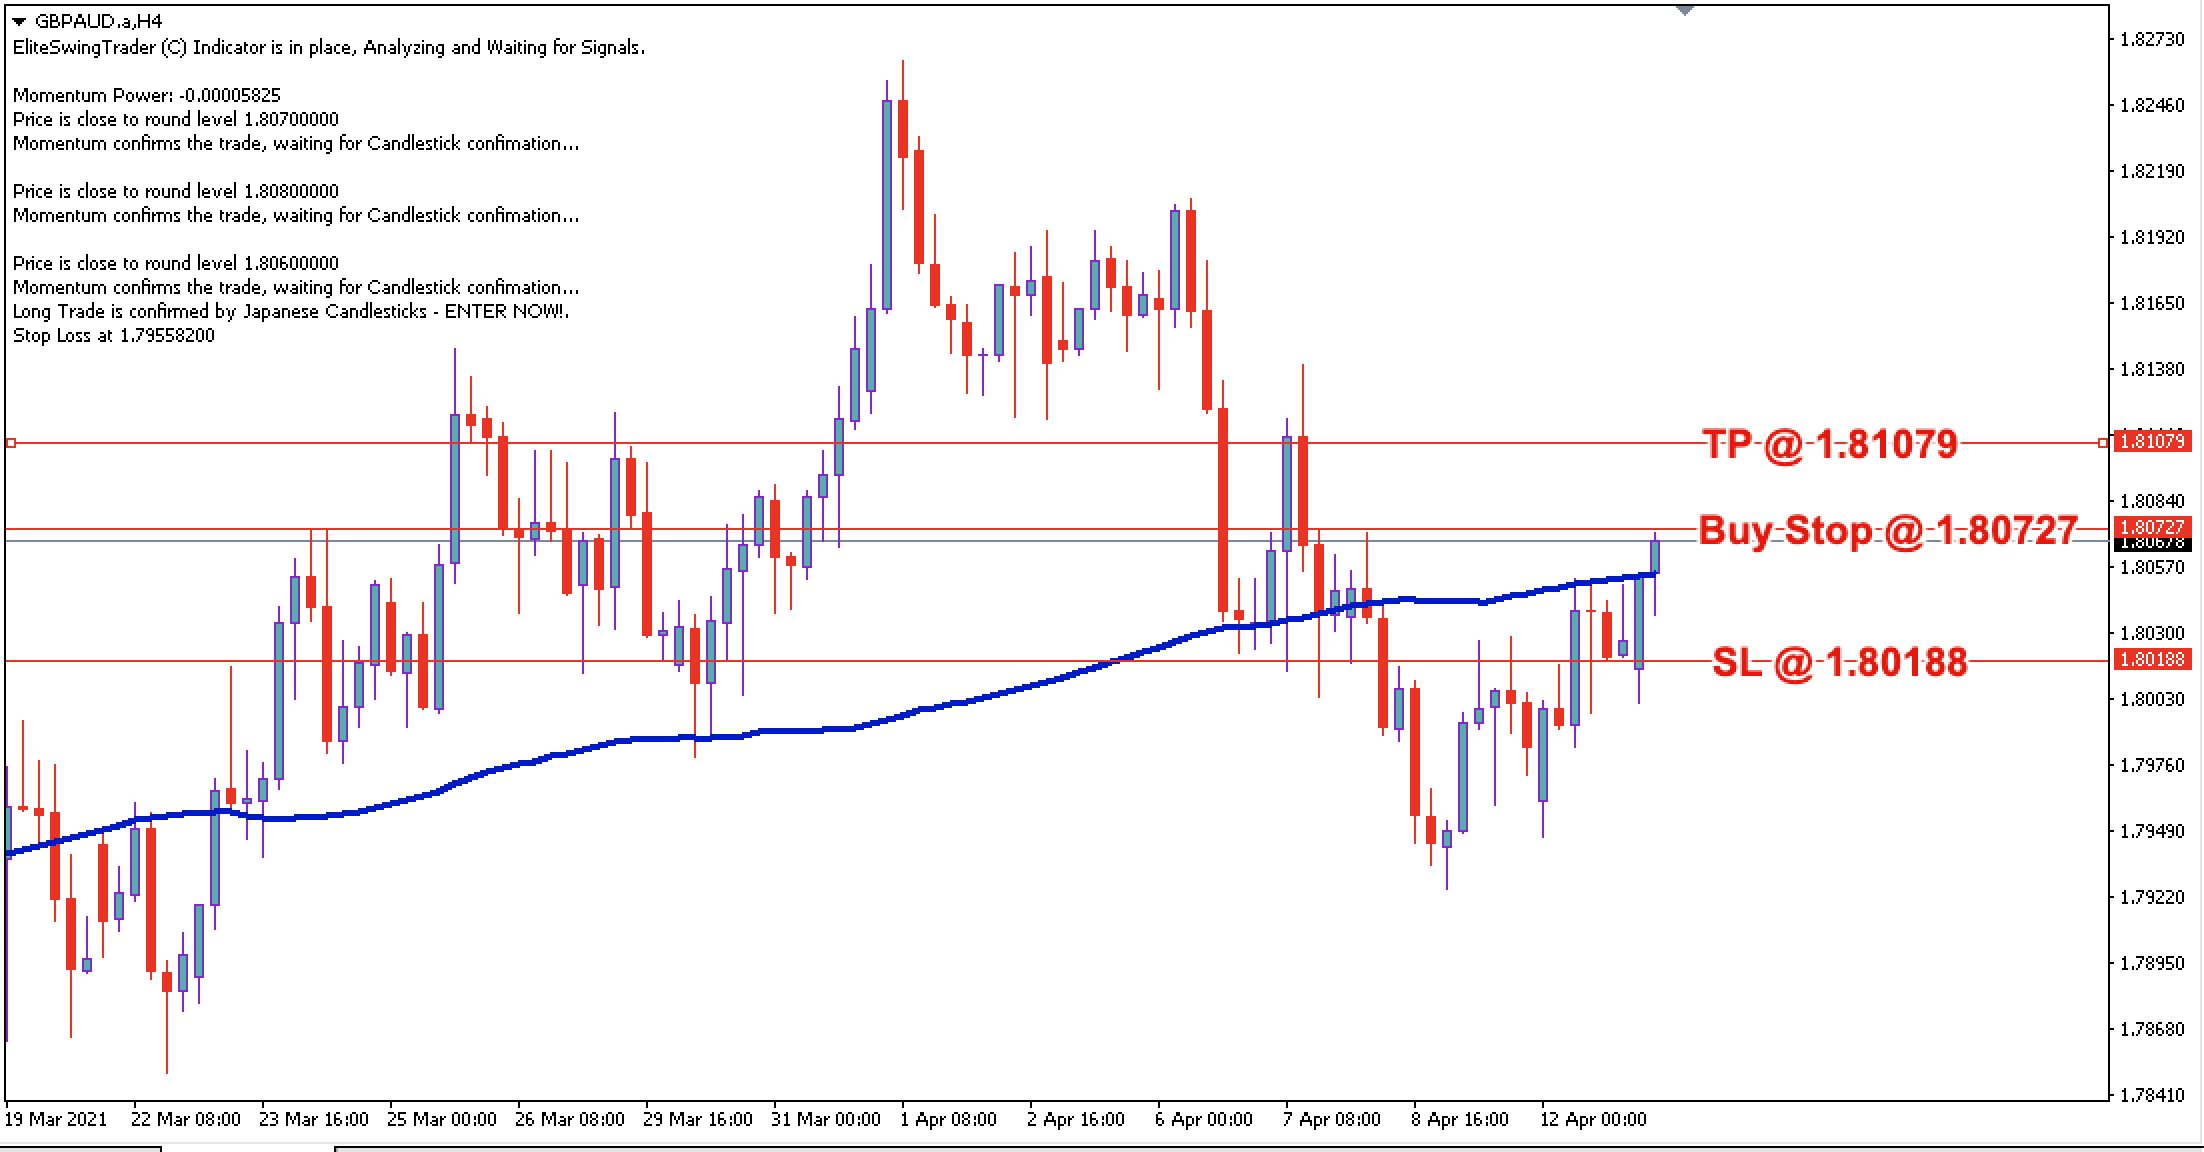 GBP/AUD Daily Price Forecast - 13th April 2021